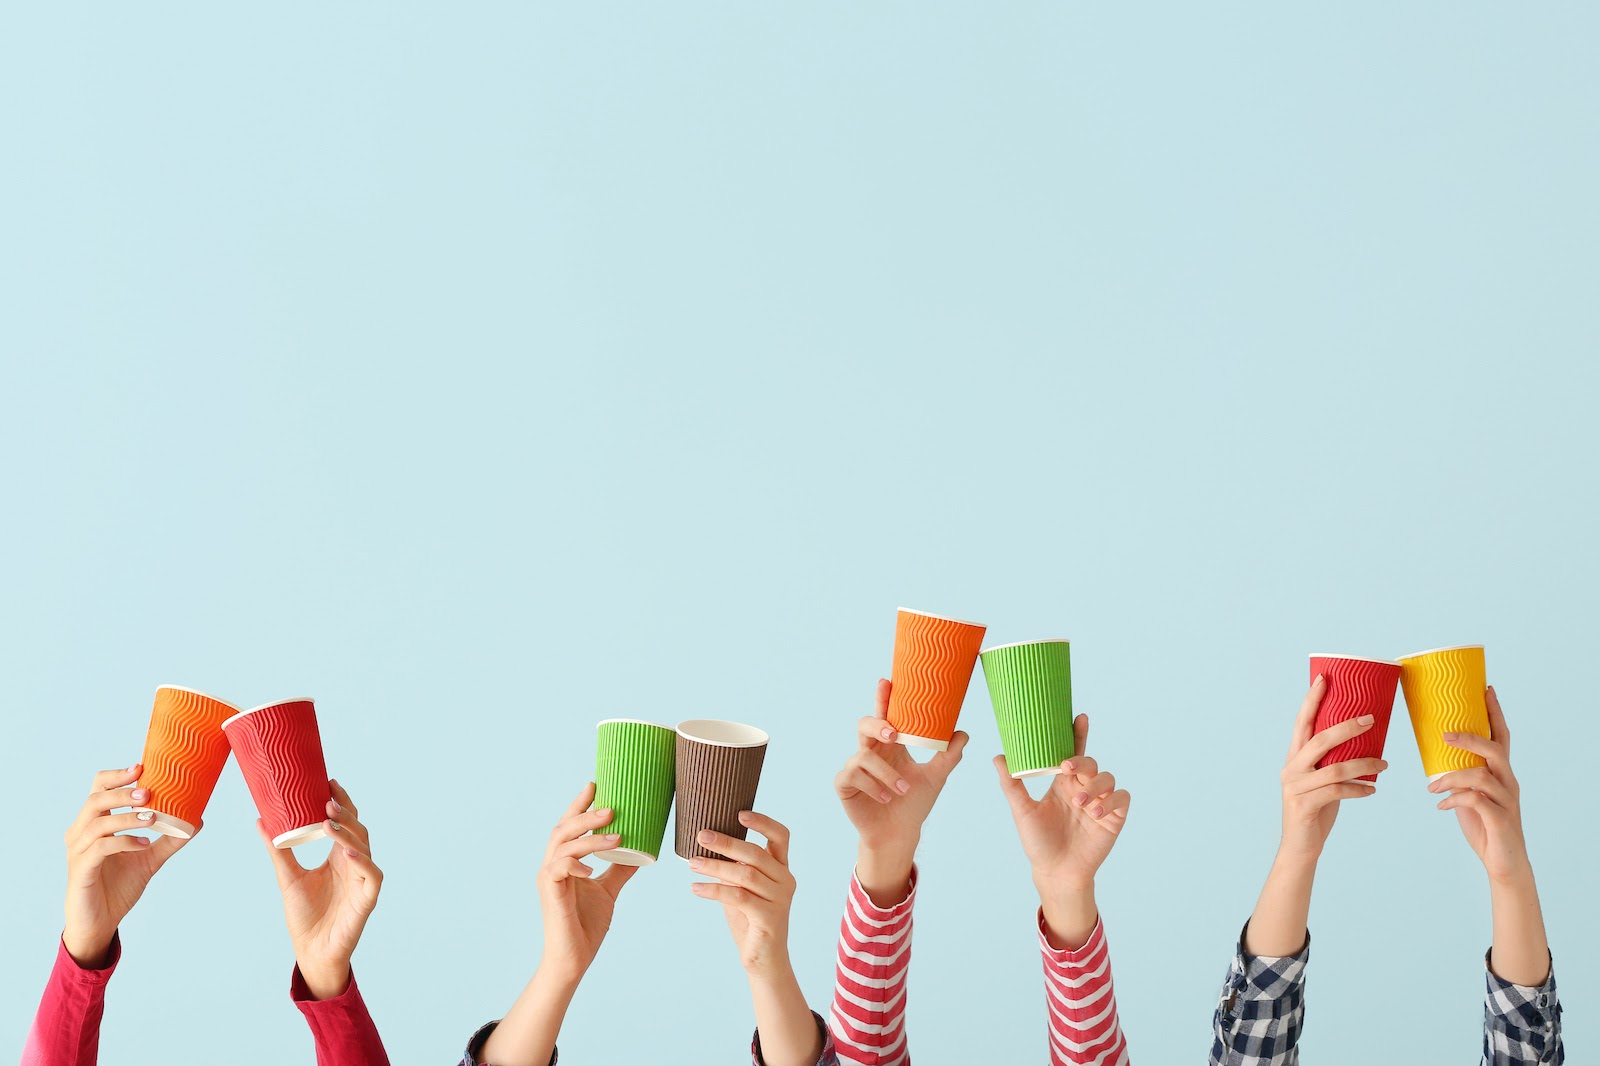 Hands hold up coffee cups as a fun virtual meeting perk